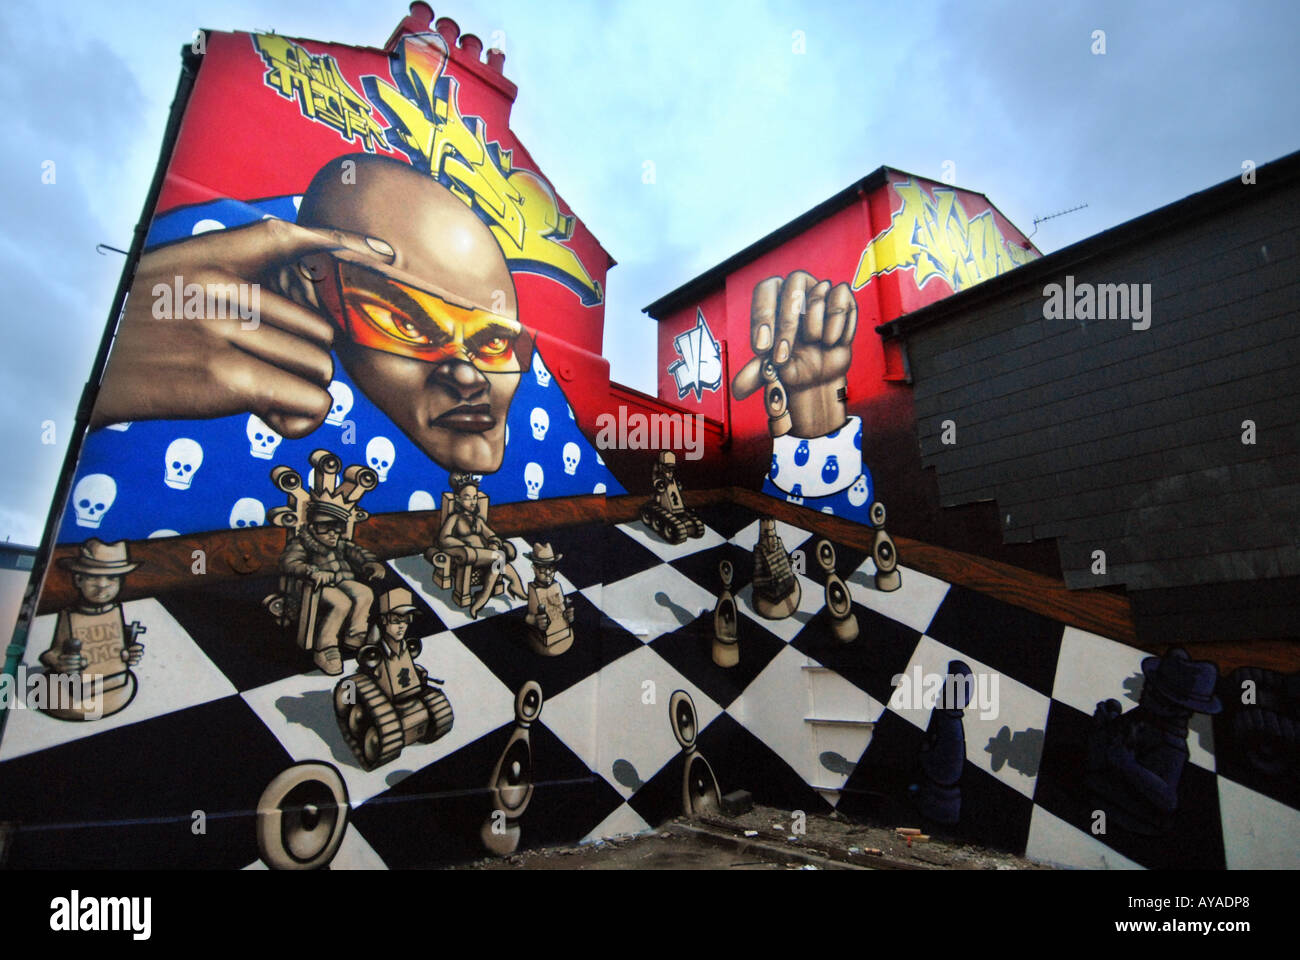 Graffiti art on the gable ends of terraced houses in Brighton - Stock Image